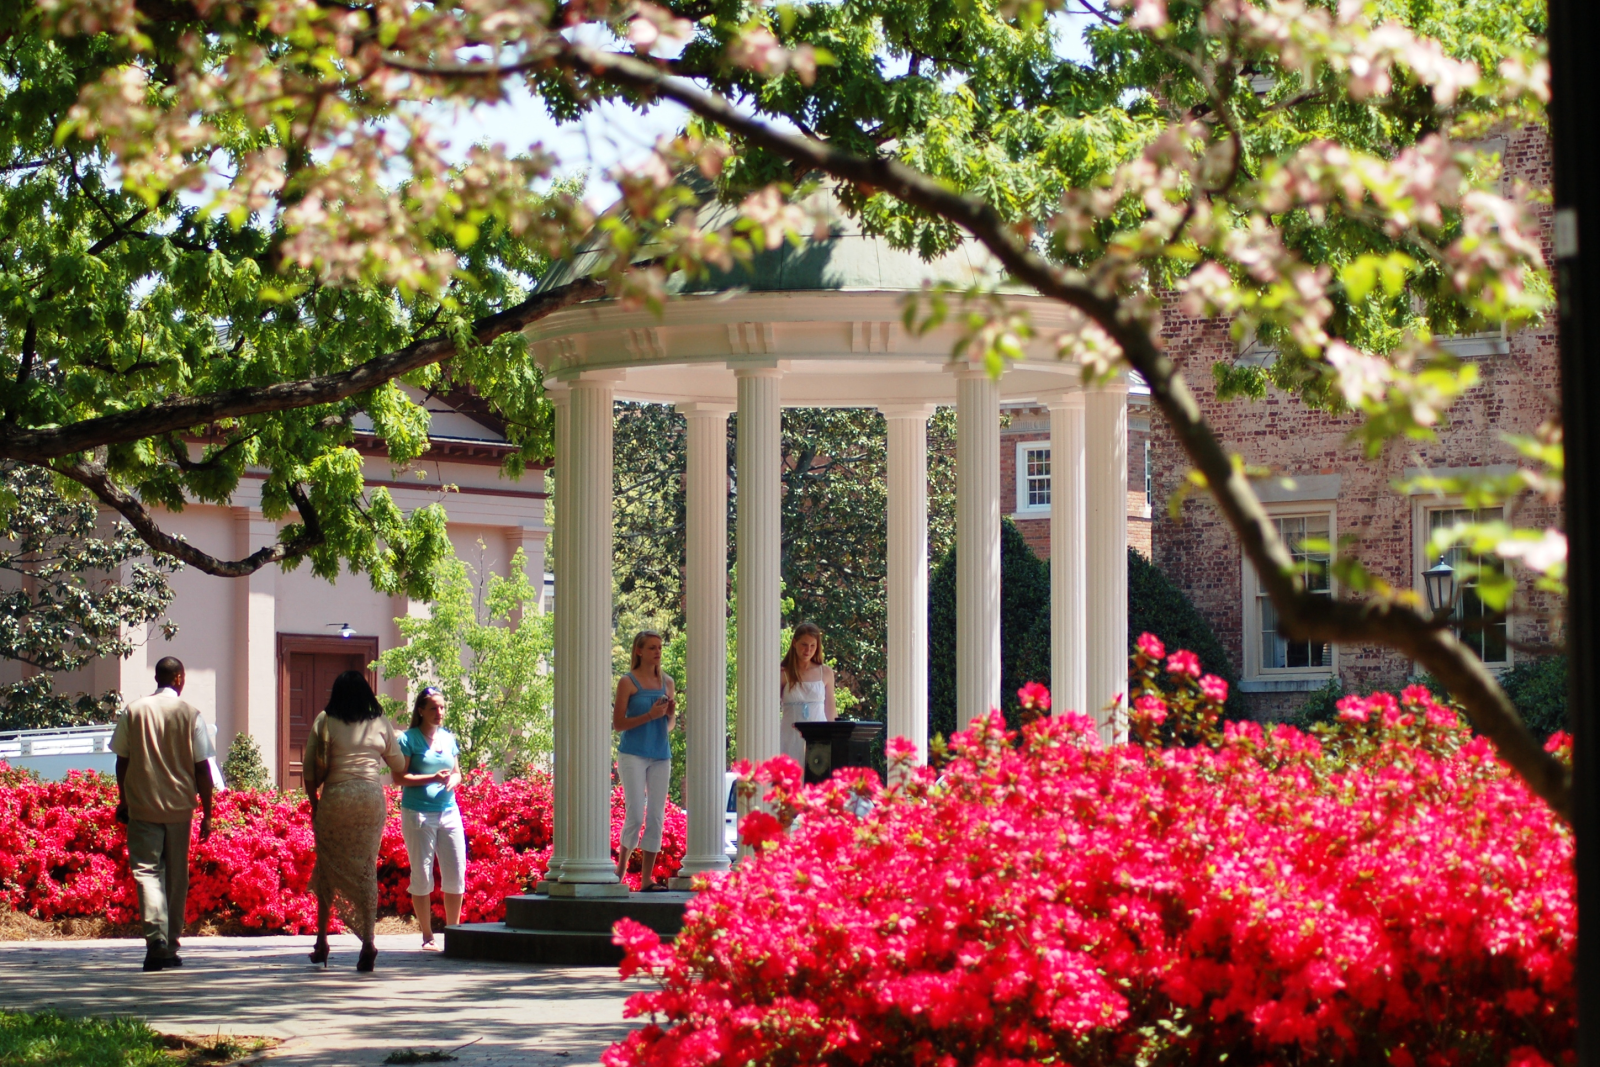 Schools and universities in Raleigh, NC - plaza, flowers